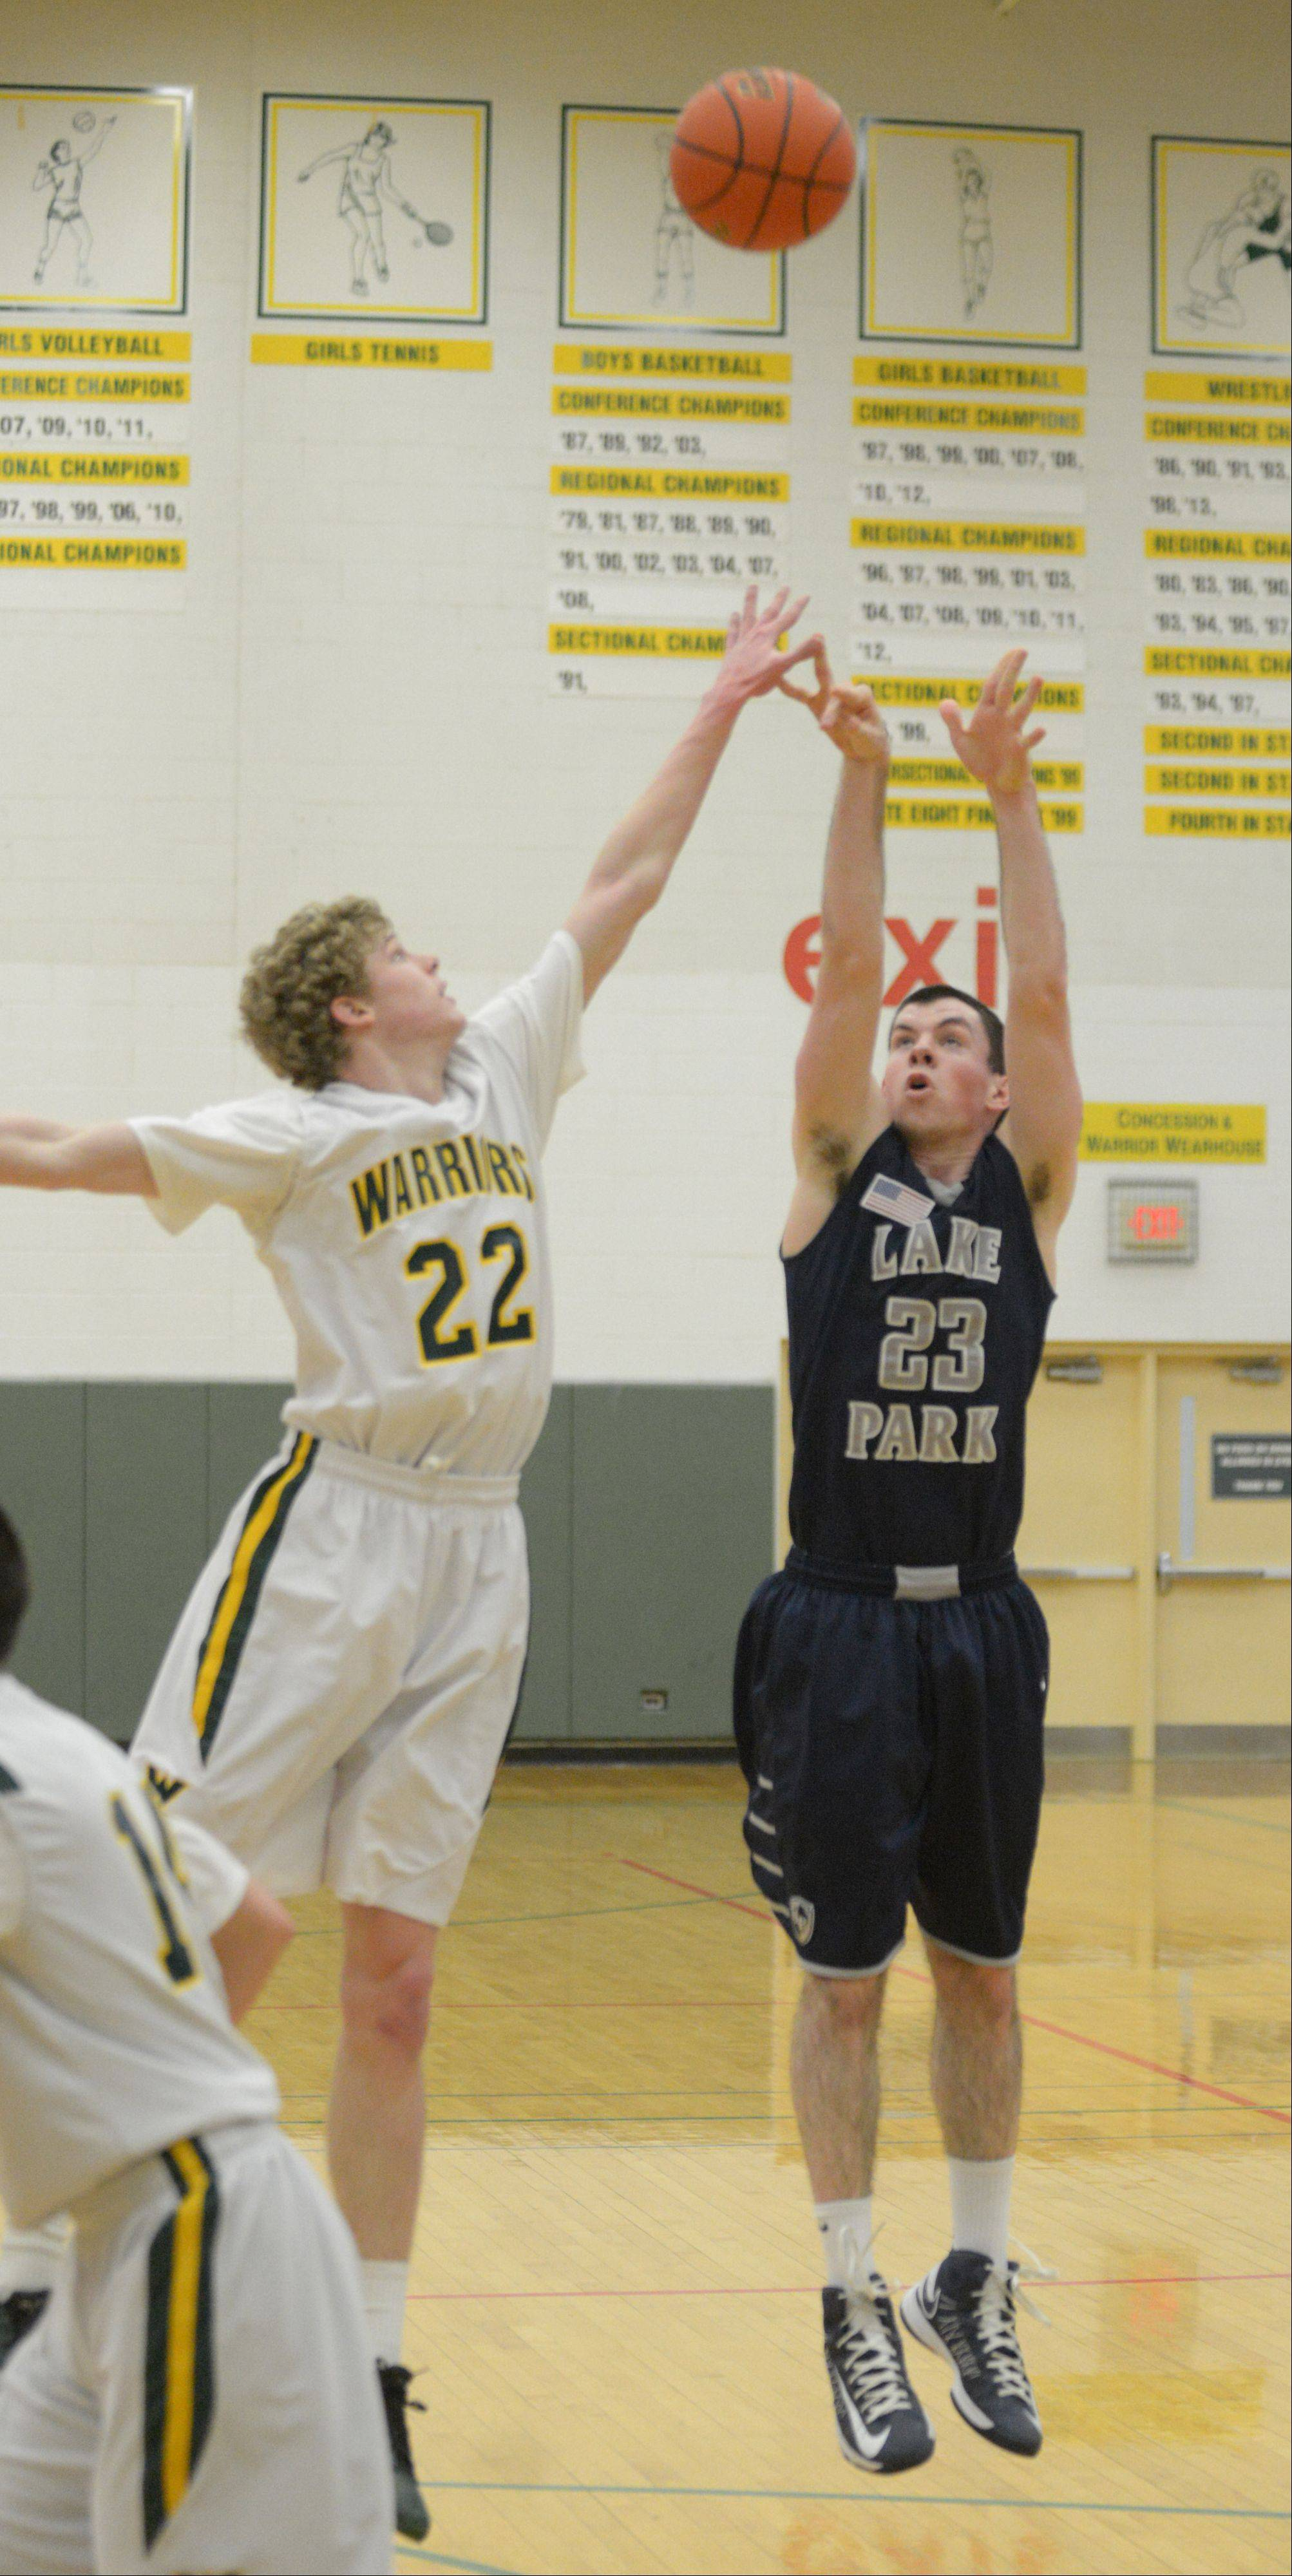 Waubonsie Valley runs winning streak to 6 games